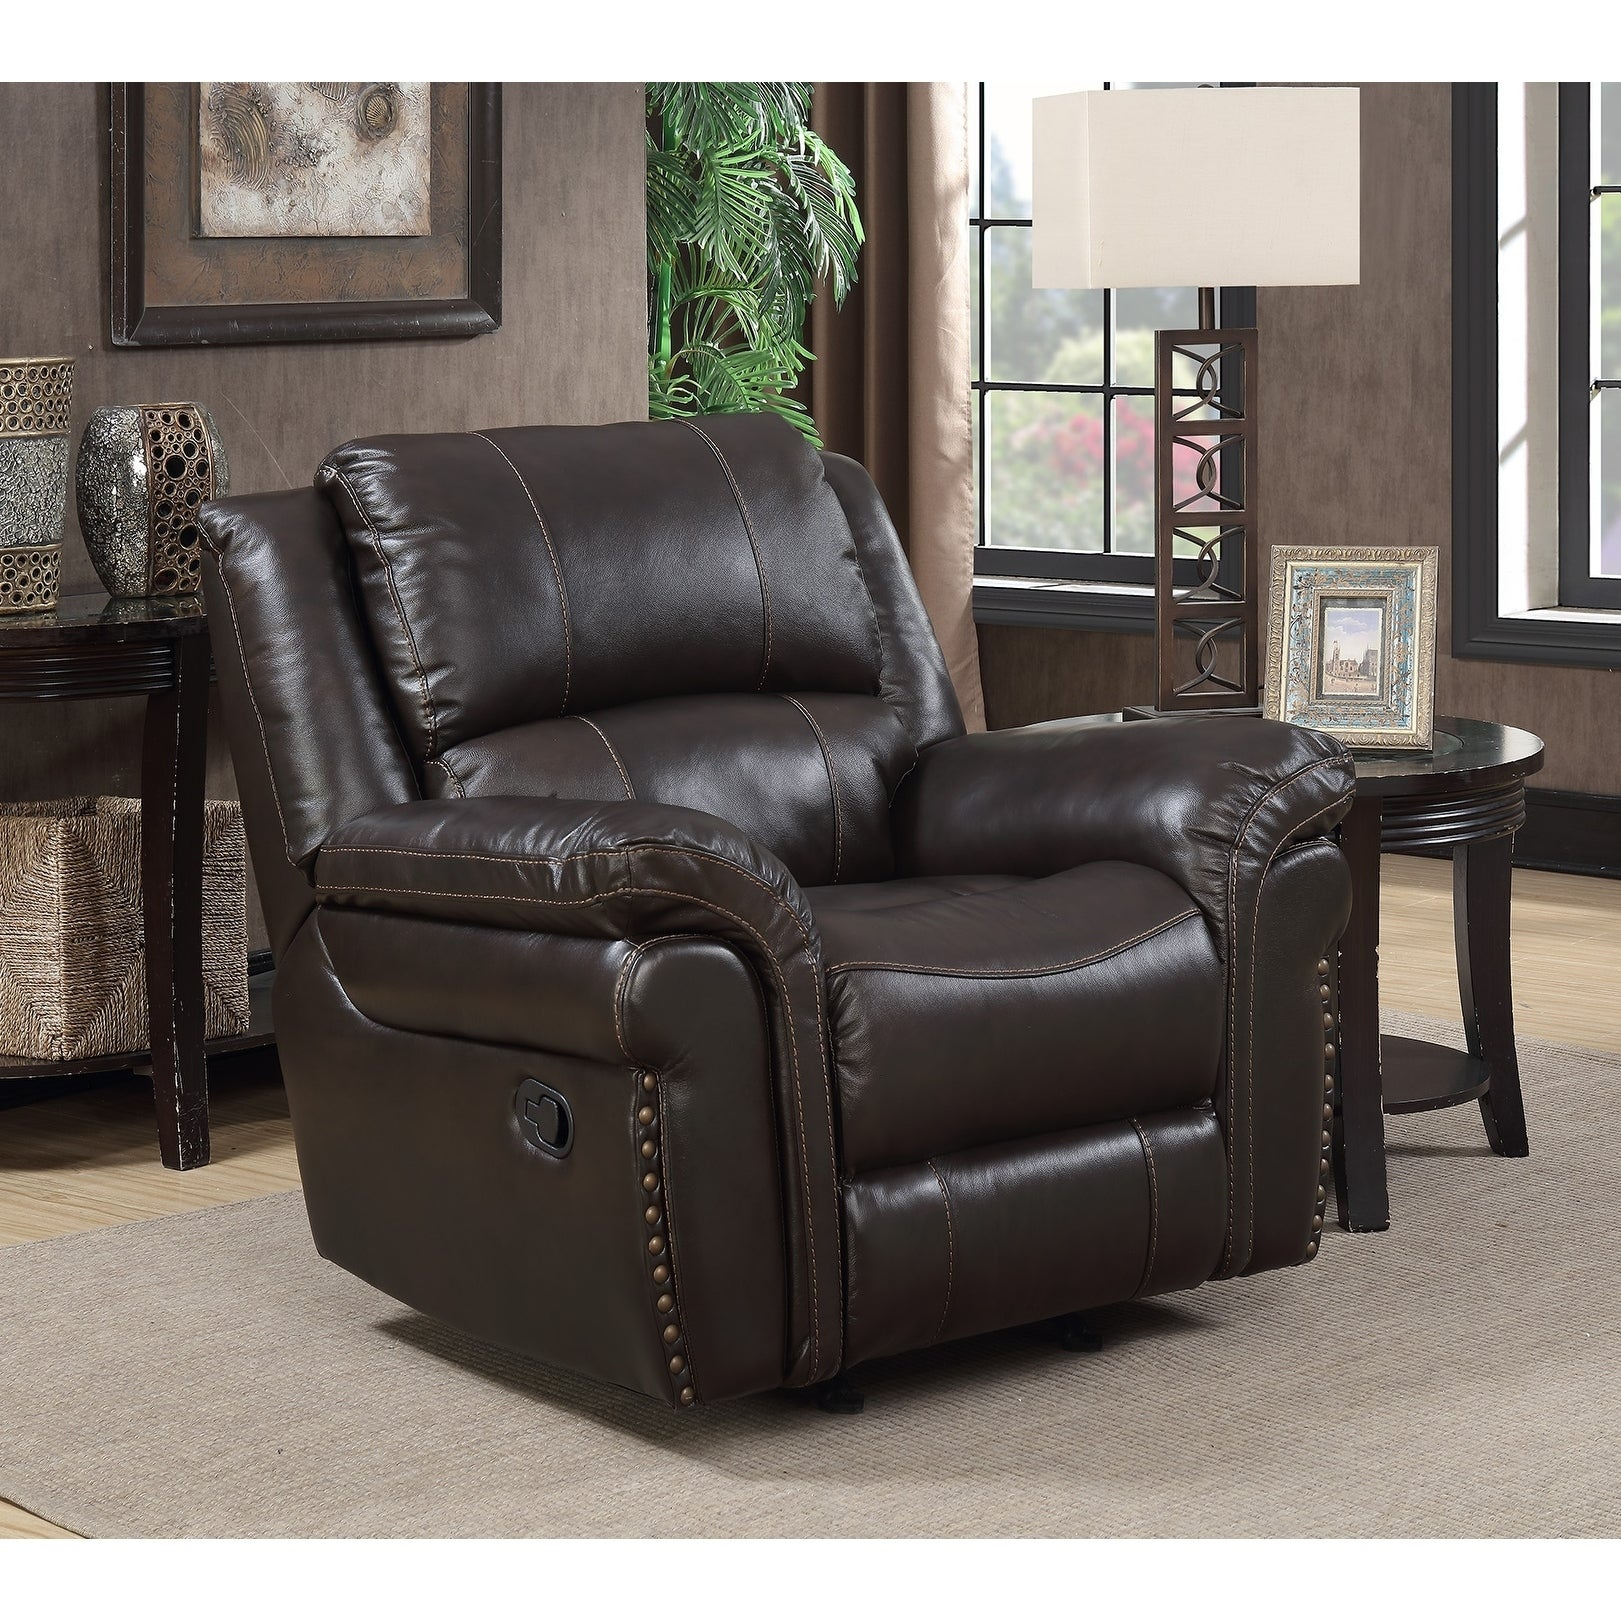 Shop landon chocolate brown leather touch rocker recliner with memory foam seat topper free shipping today overstock com 17624895